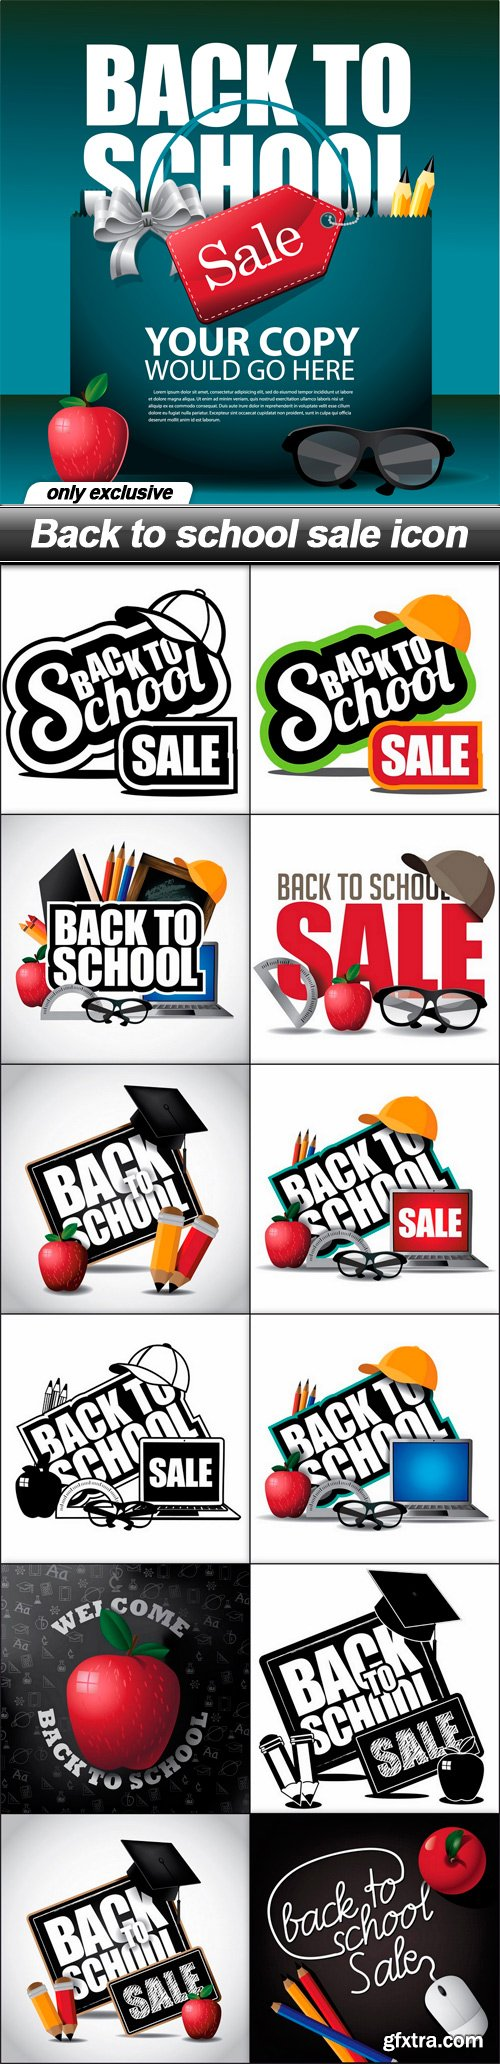 Back to school sale icon - 13 EPS